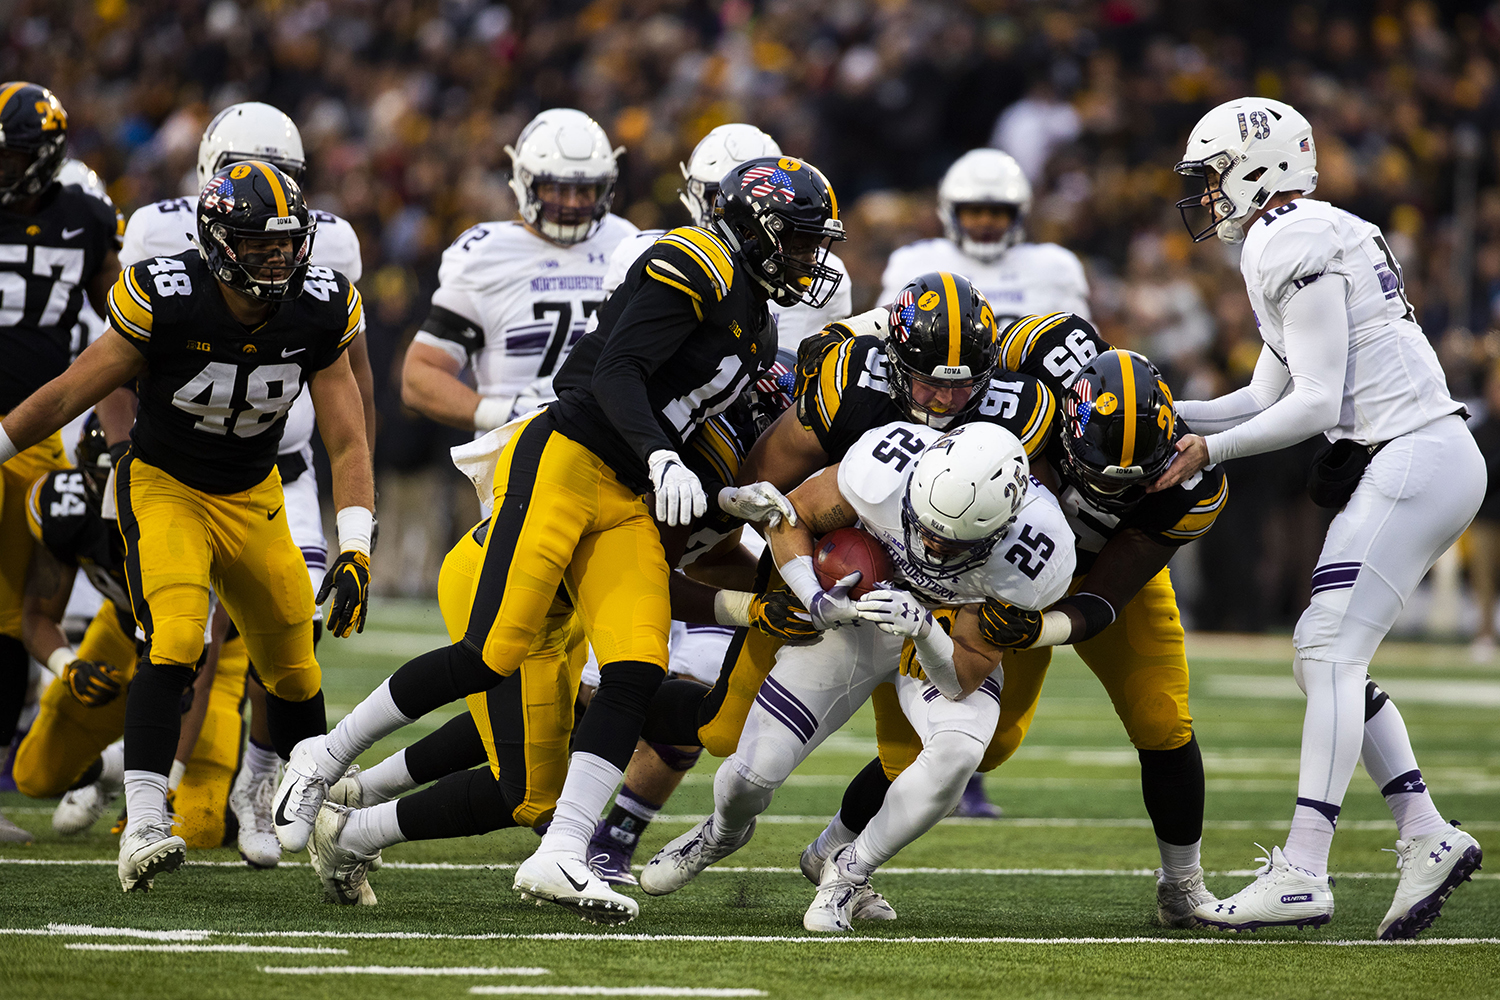 Northwestern's Isaiah Bowser is tackled by Iowa defense during the Iowa/Northwestern football game at Kinnick Stadium on Saturday, November 10, 2018. The Wildcats defeated the Hawkeyes, 14-10. (Lily Smith/The Daily Iowan)